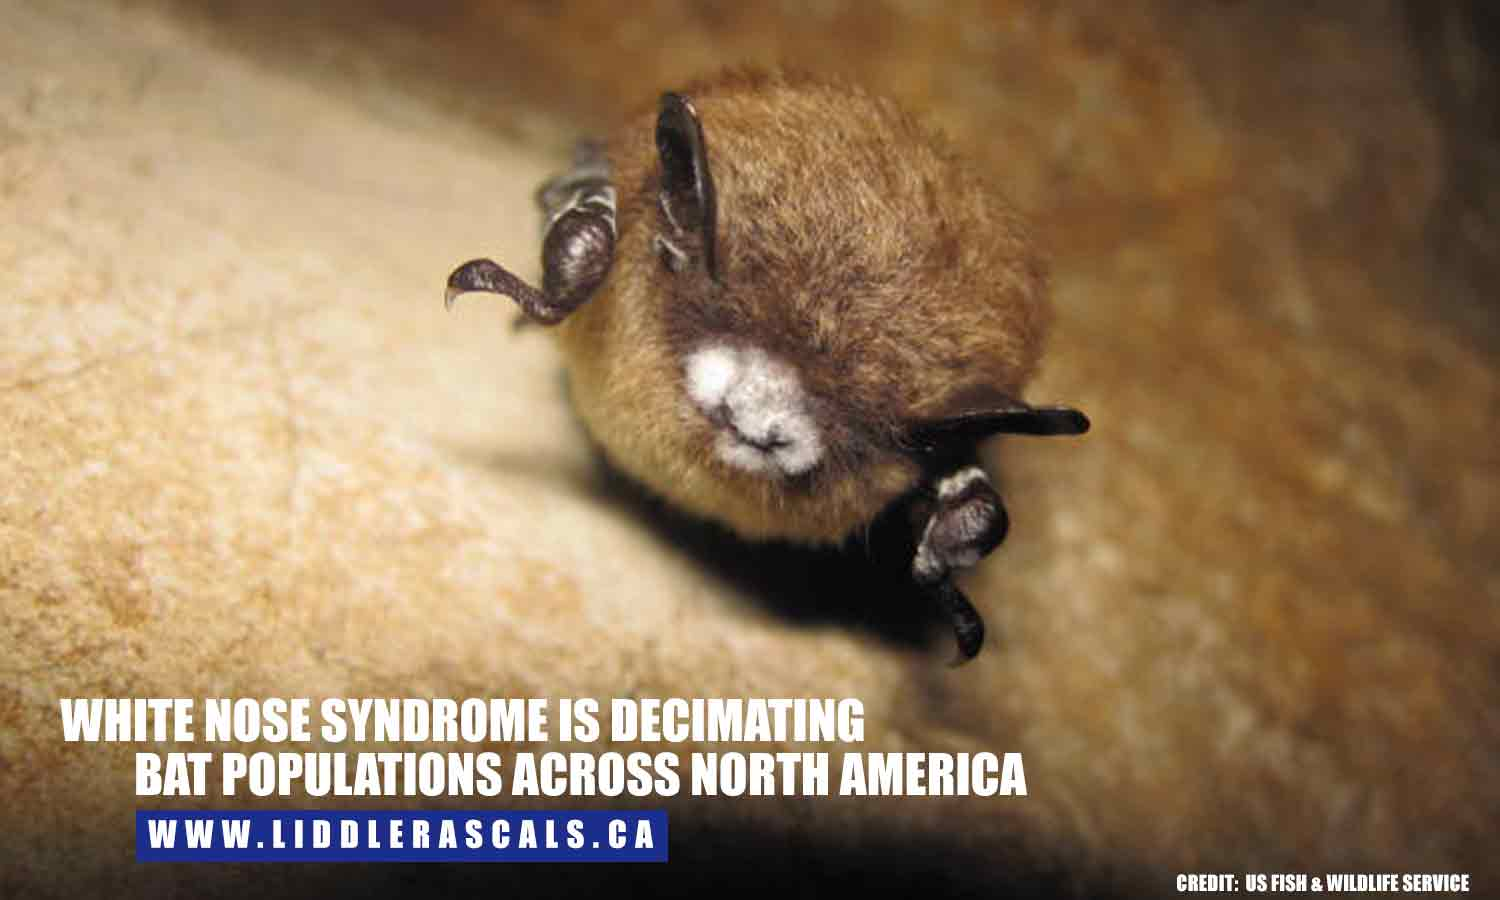 White Nose Syndrome is decimating bat populations across North America